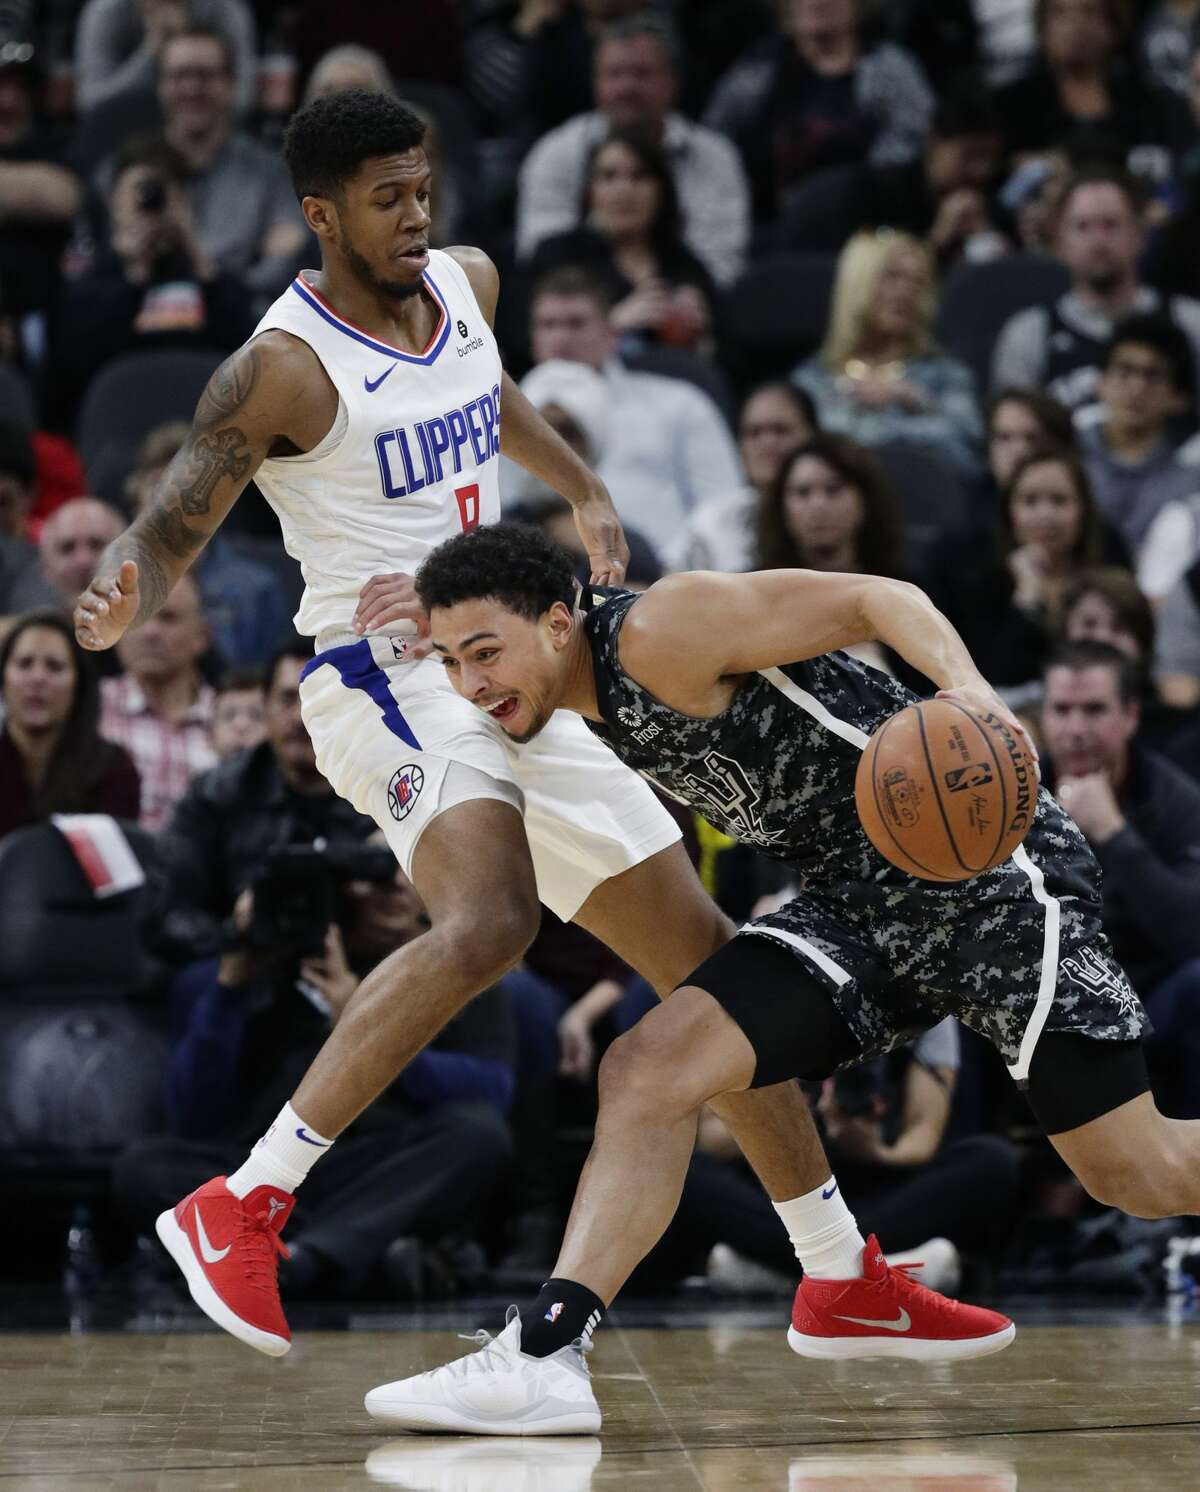 San Antonio Spurs guard Bryn Forbes (11) drives around Los Angeles Clippers guard Tyrone Wallace (9) during the first half of an NBA basketball game, Sunday, Jan. 20, 2019, in San Antonio. (AP Photo/Eric Gay)